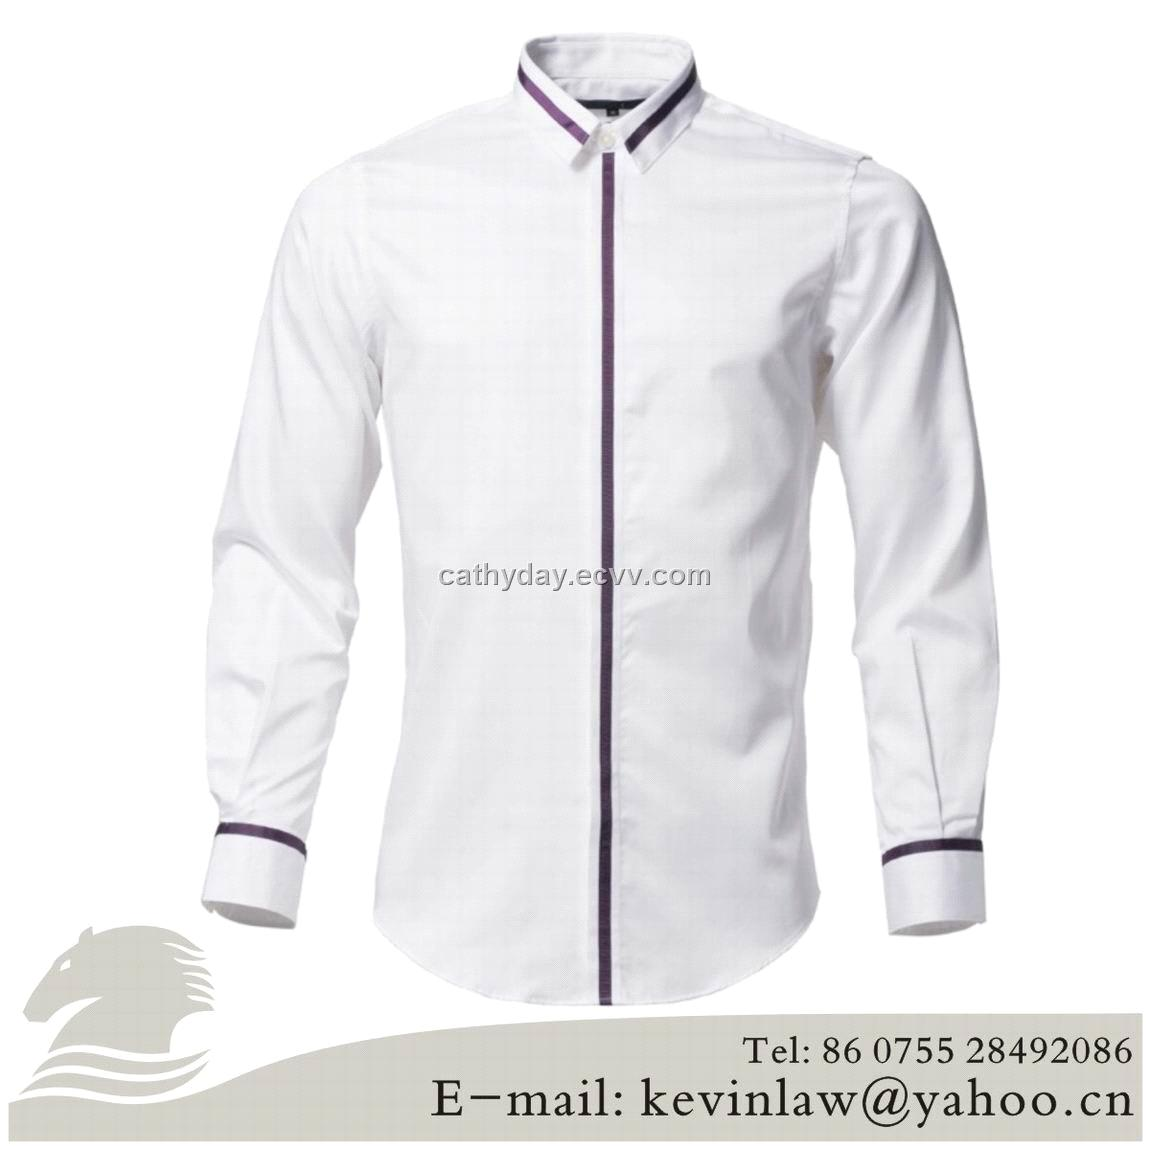 White Cotton Shirt Men | Artee Shirt